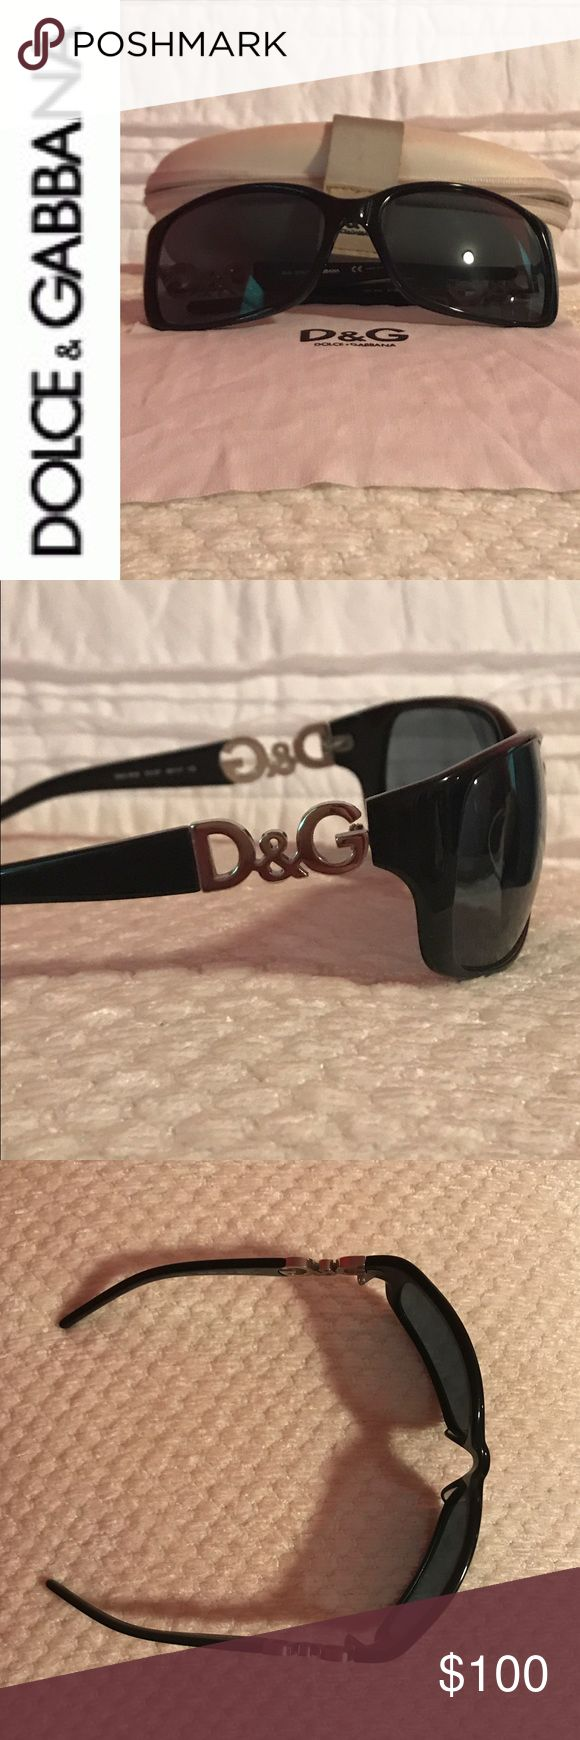 Fabulous Dolce & Gabbana Sunglasses Dolce and Gabbana Sunglasses Black Frames and Lenses.  This curve hugging silhouette with distinct silver DG logo melds contemporary elegance with high fashion accessories.  Excellent Used Condition, cleaning cloth and case included. Dolce & Gabbana Accessories Sunglasses